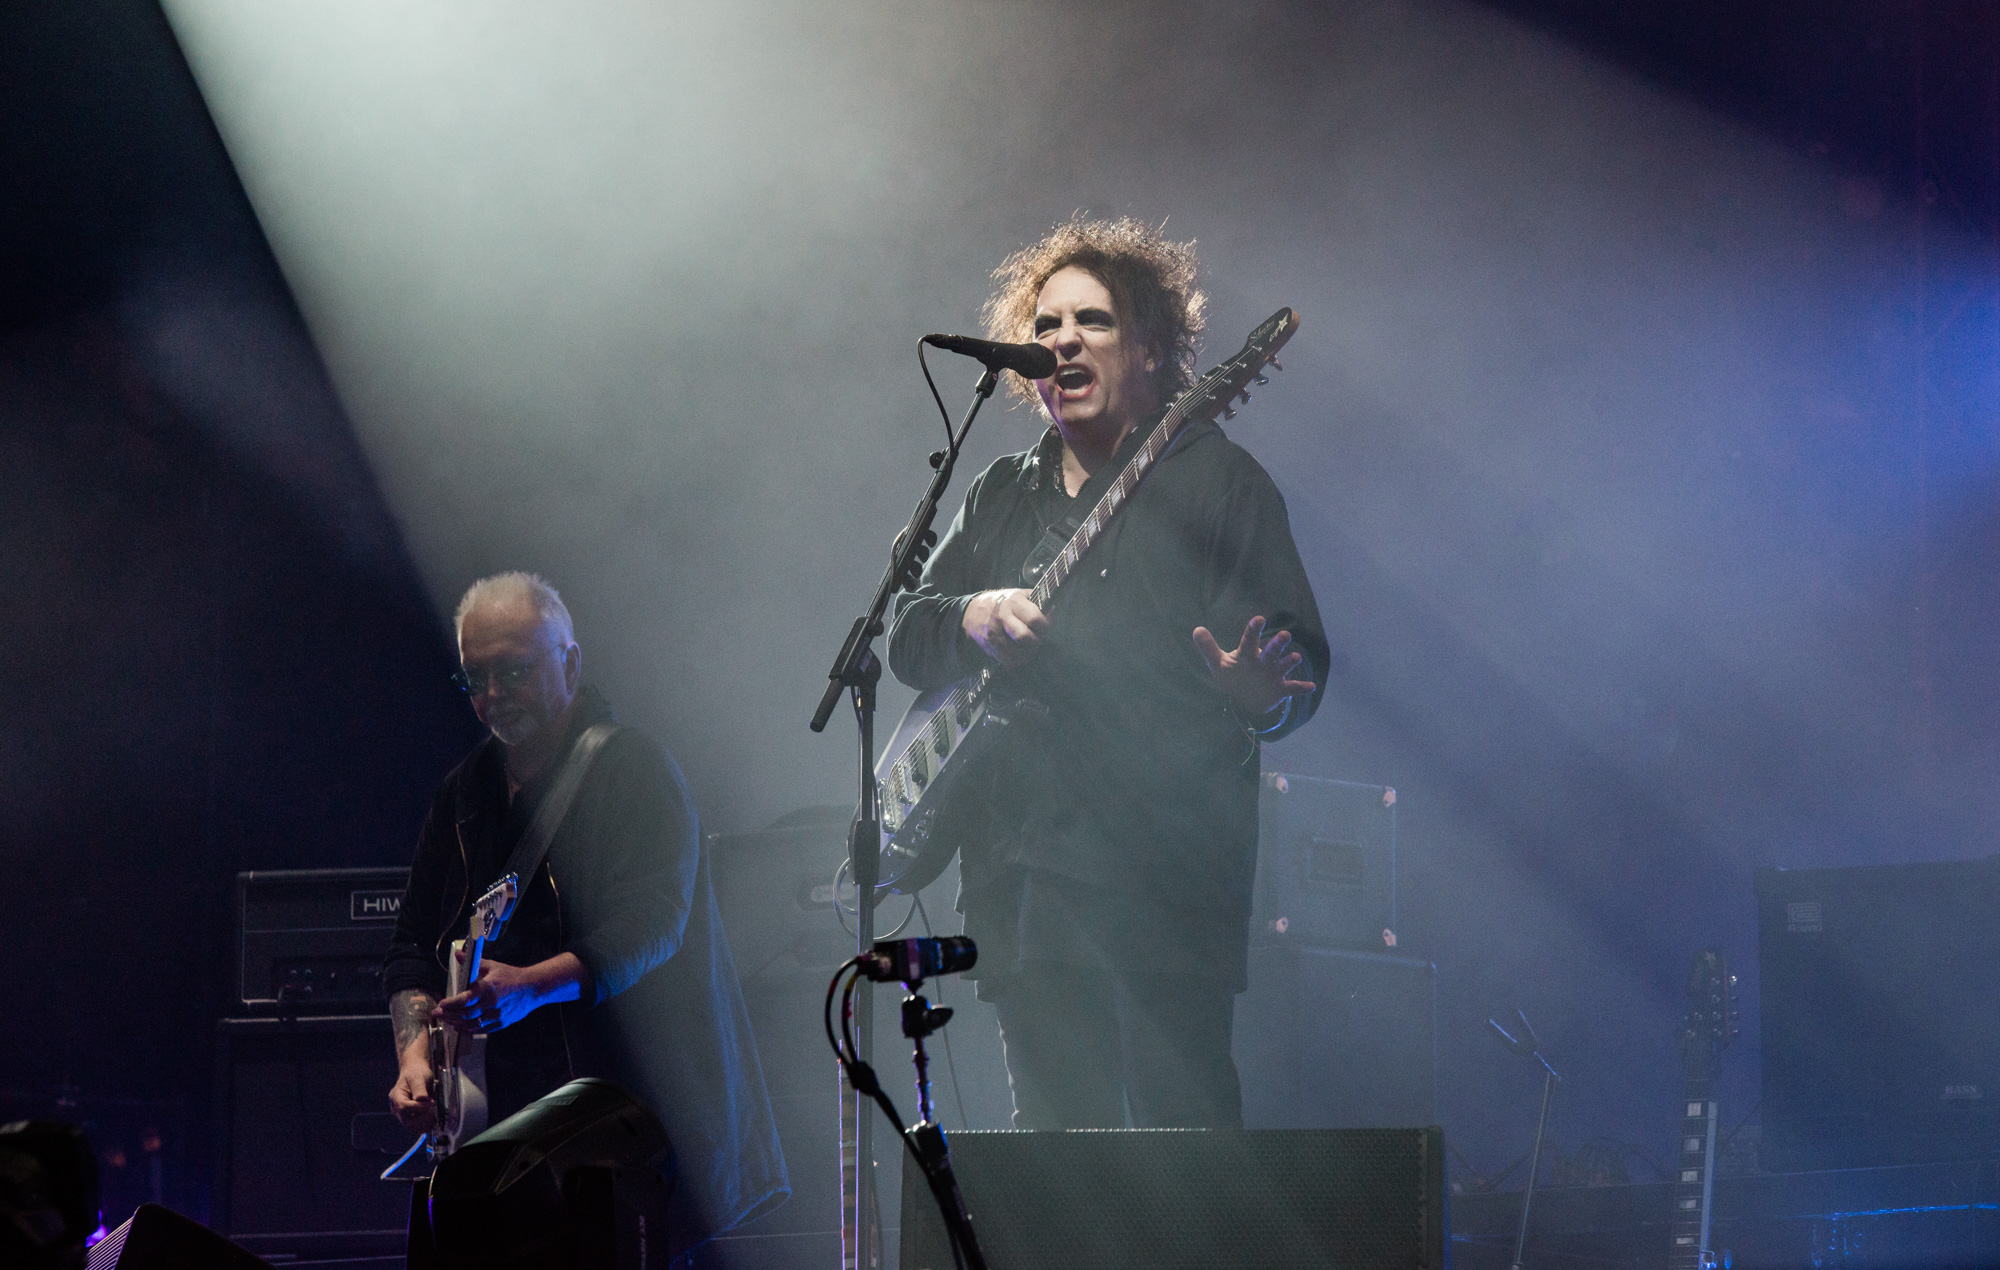 The Cure's Robert Smith reveals three new albums are in the works